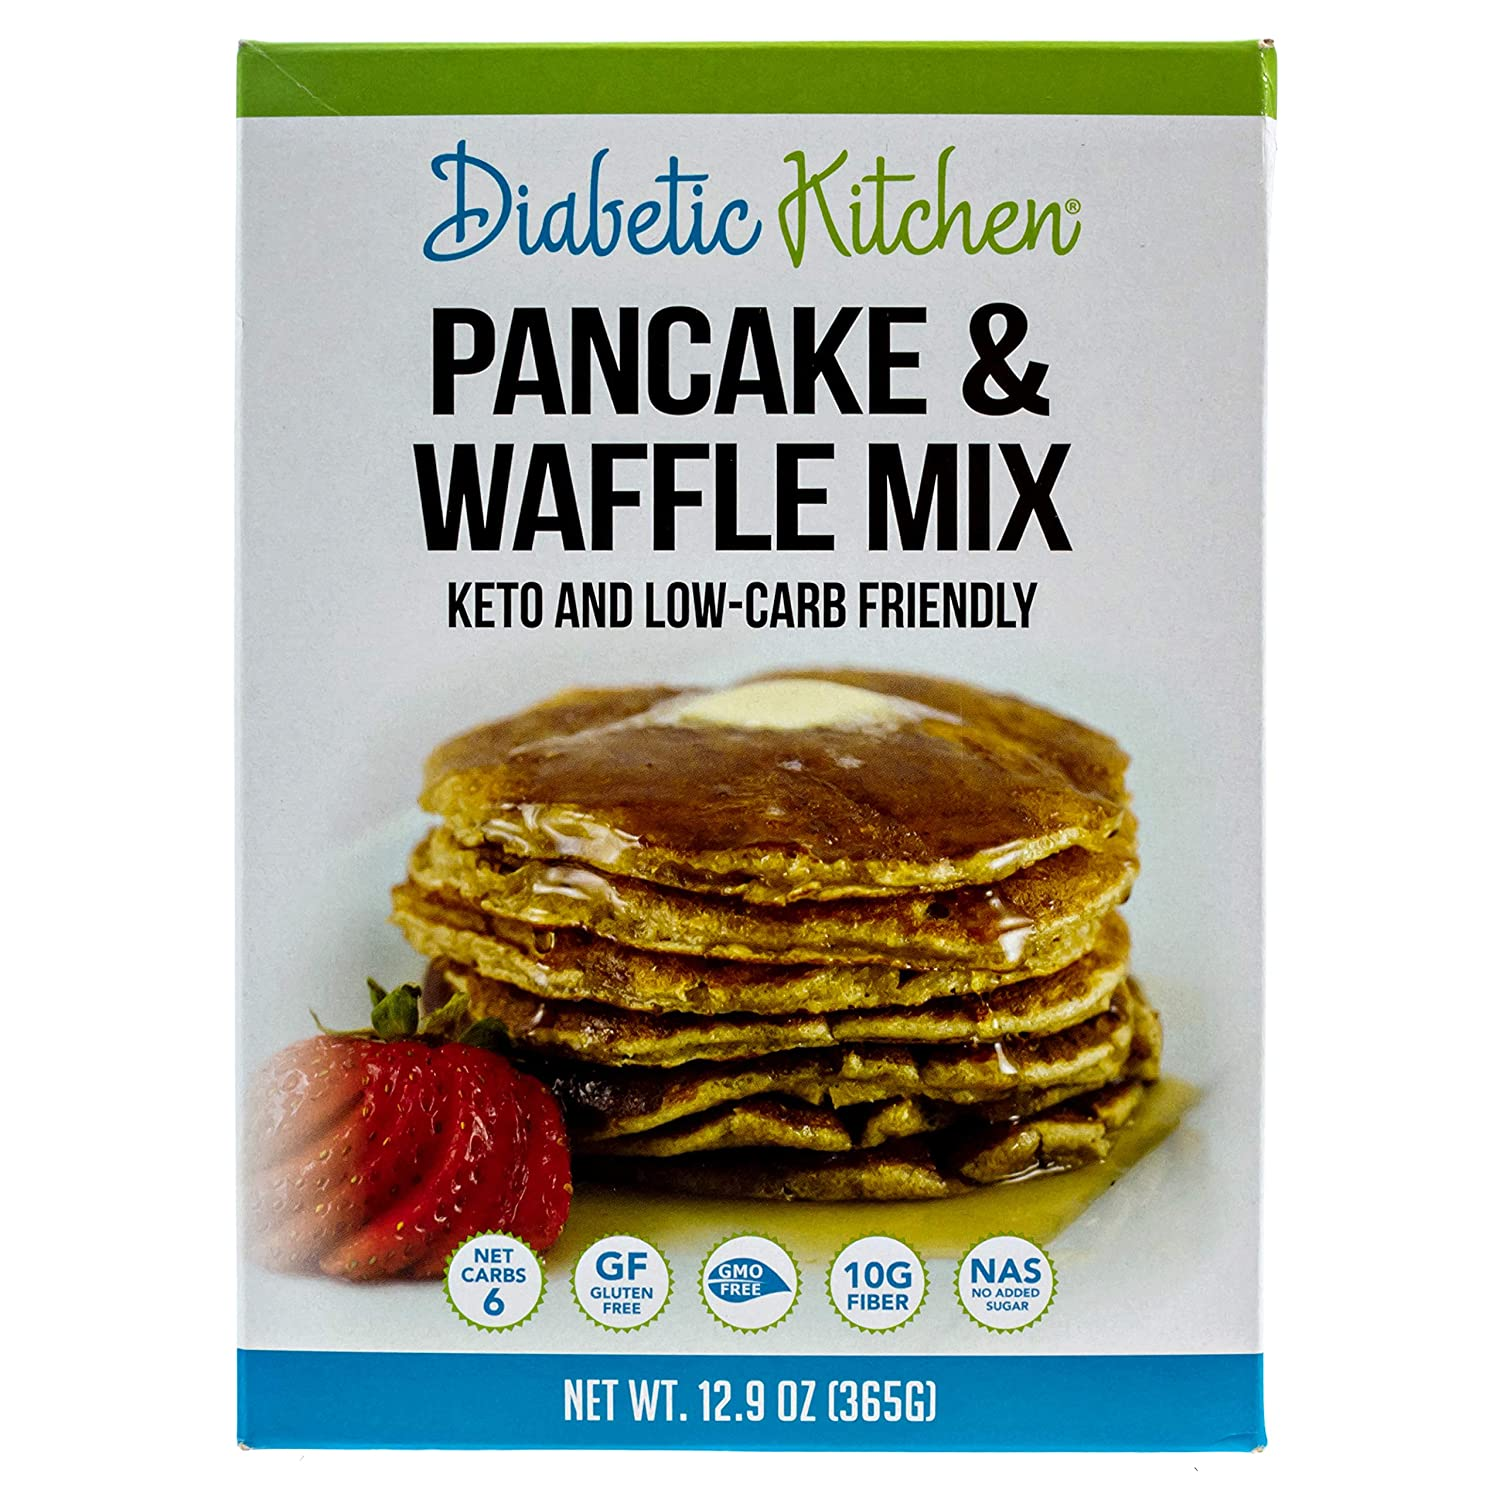 Diabetic Kitchen Pancake & Waffle Mix, Keto Friendly, Low Carb, Gluten-Free, 10g Fiber, No Artificial Sweeteners or Sugar Alcohols, Non-GMO and No Sugar Added